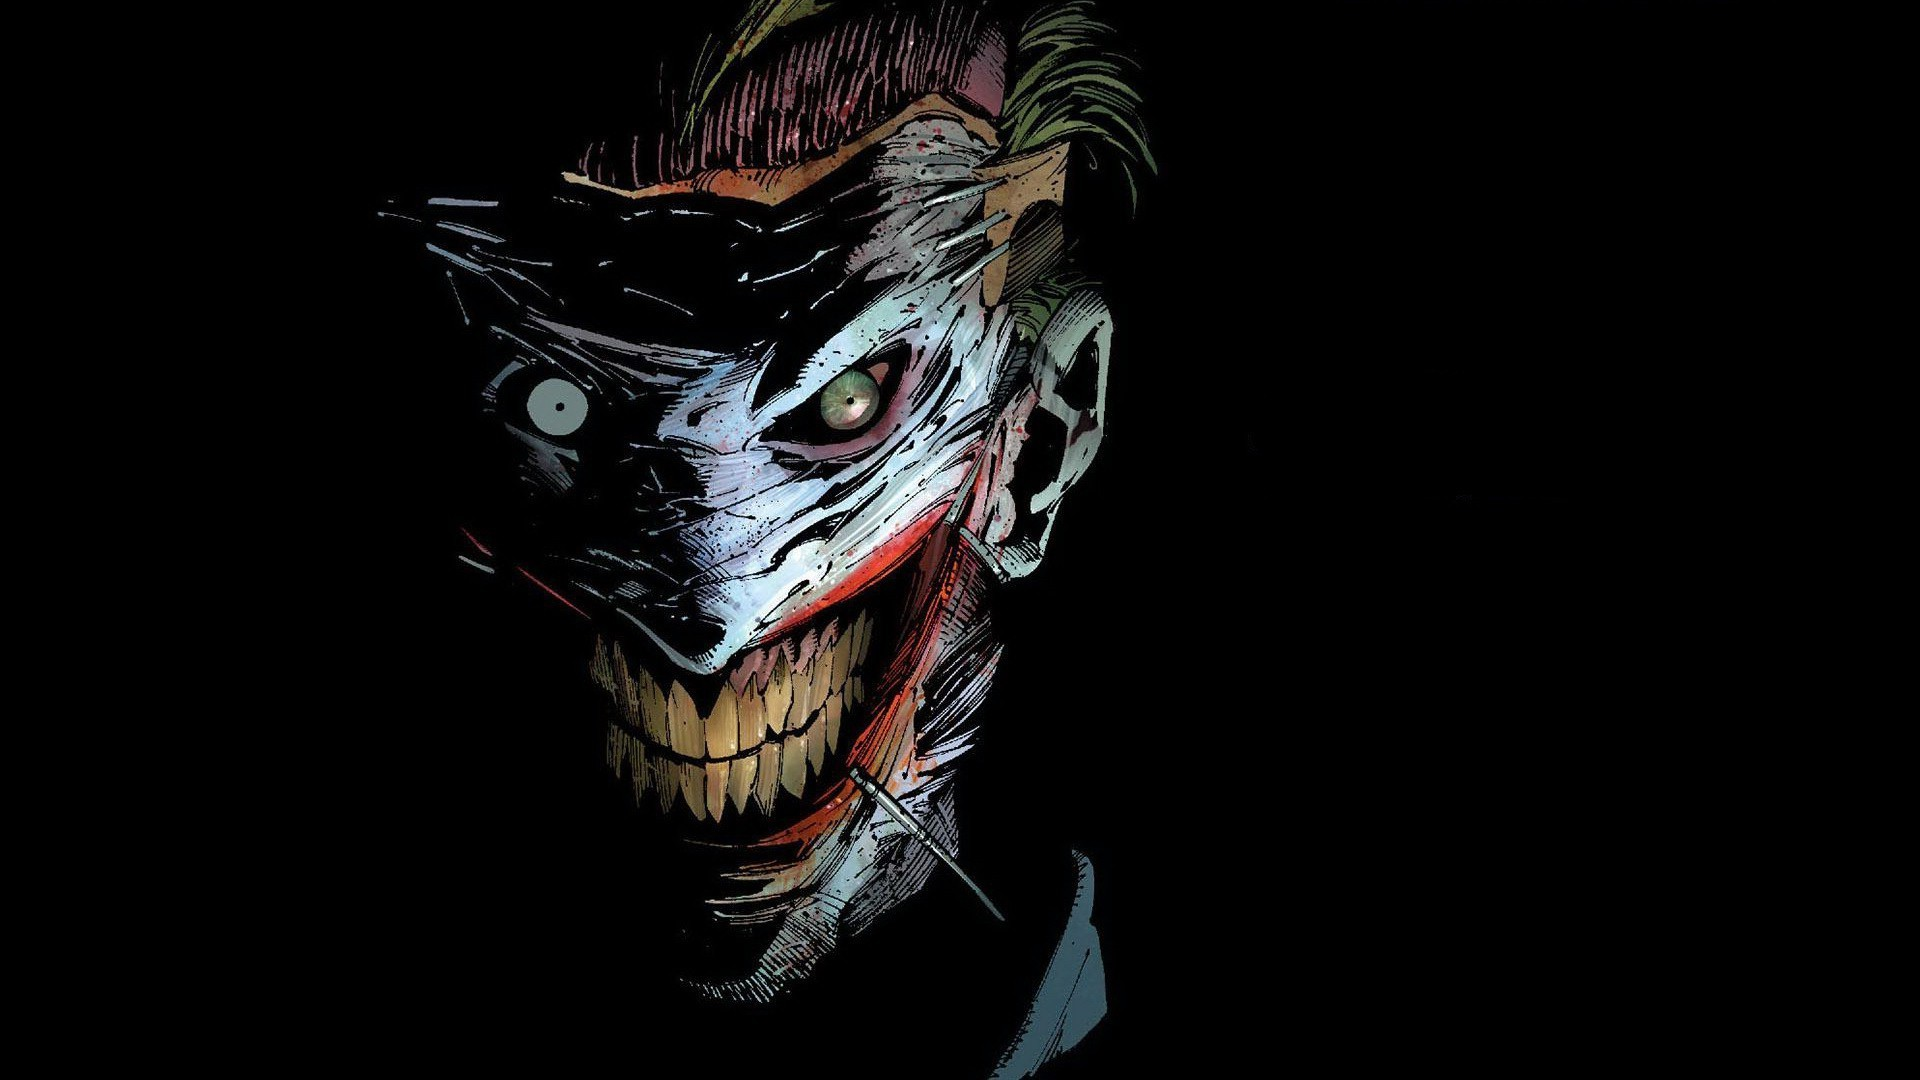 Joker comic wallpaper hd wallpapersafari fav 0 rate 2 tweet 1920x1080 comics dc comics joker resolution 1920x1080 voltagebd Images